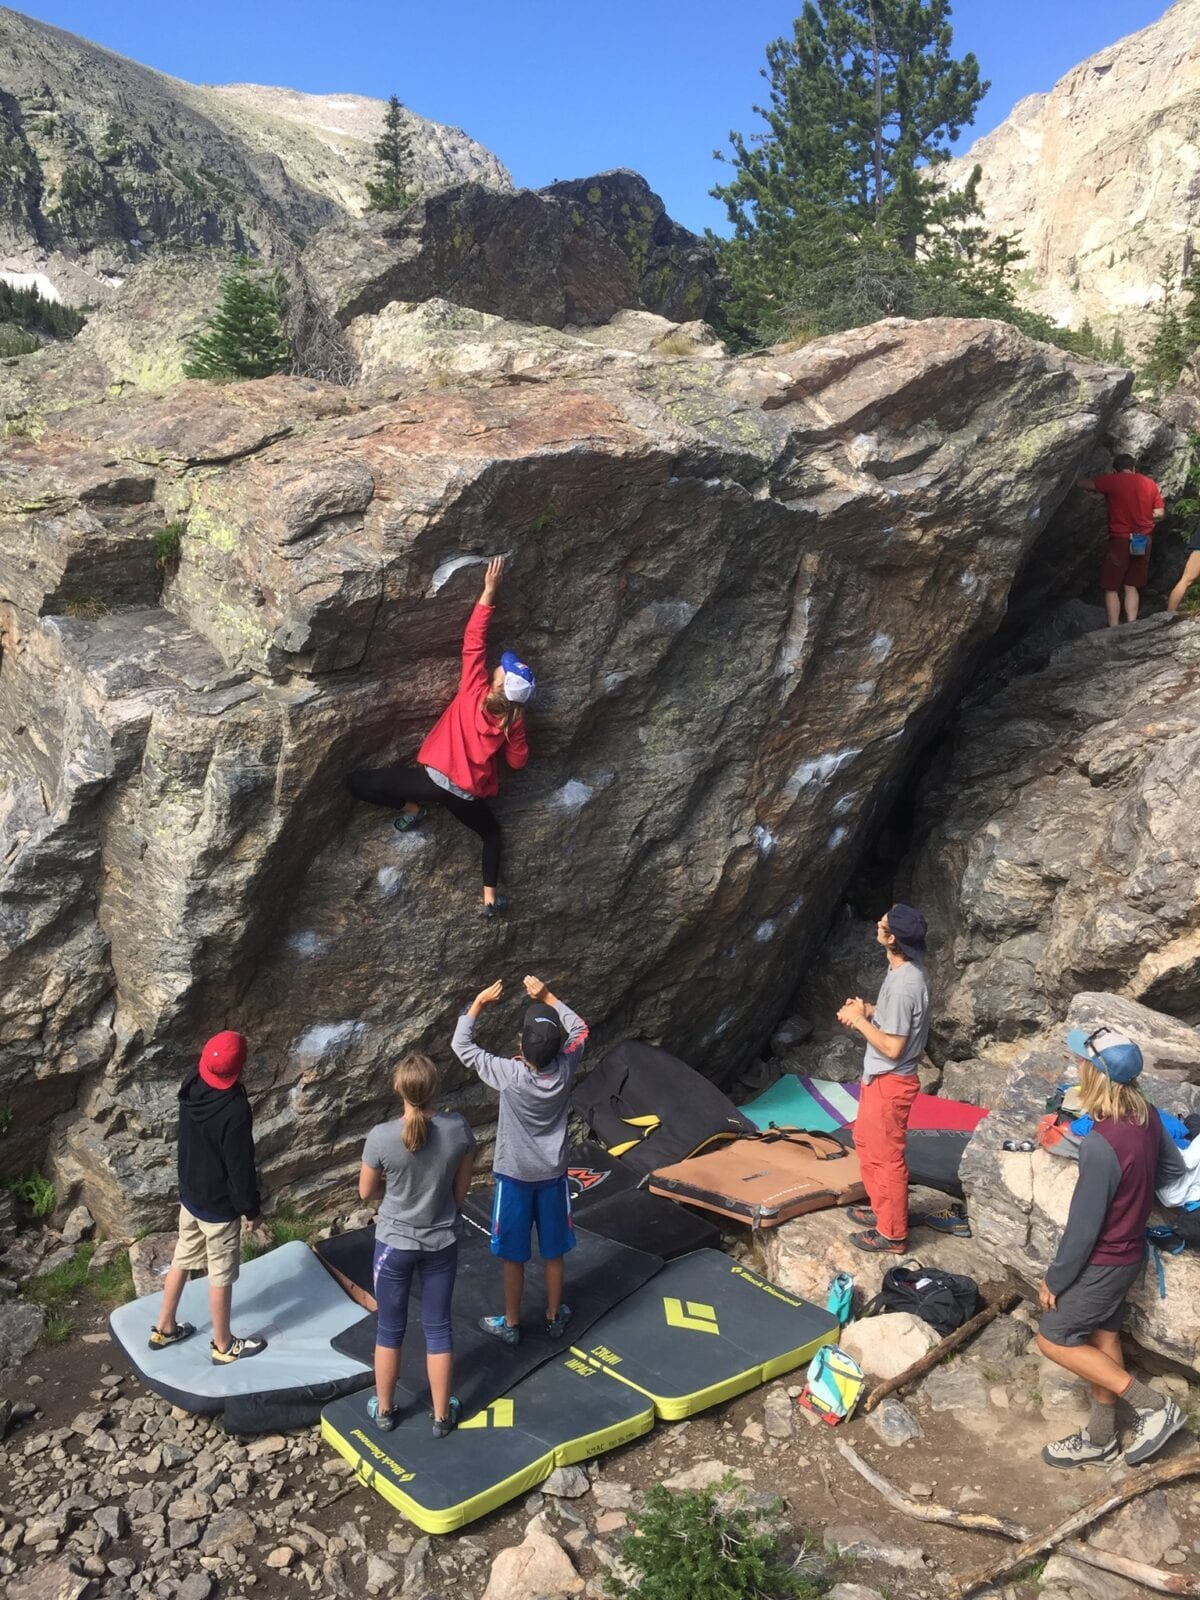 Image of people bouldering at Kent Mountain Adventure Center in Estes Park, Colorado